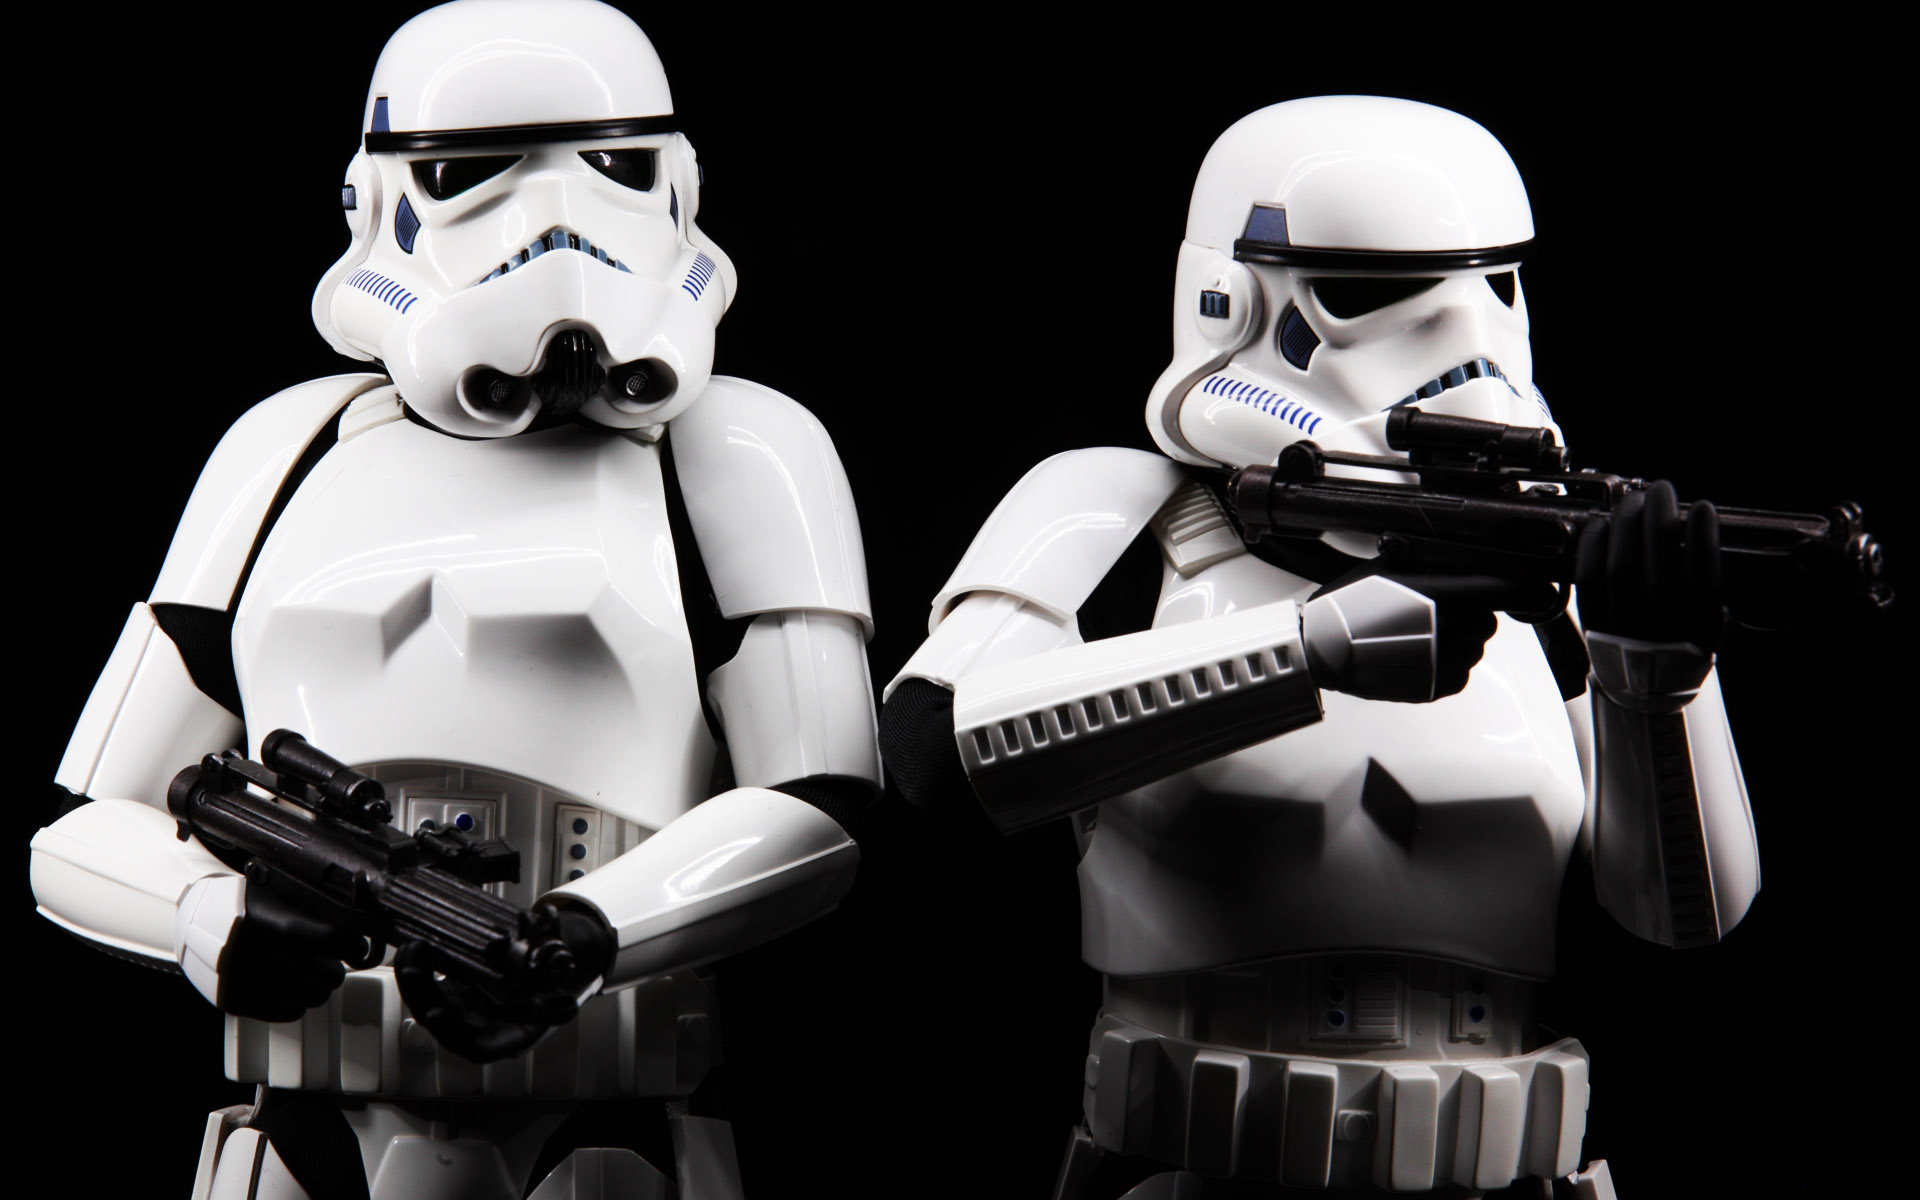 hottoys-star-wars-episode-4-a-new-hope-stormtroopers-set-picture04